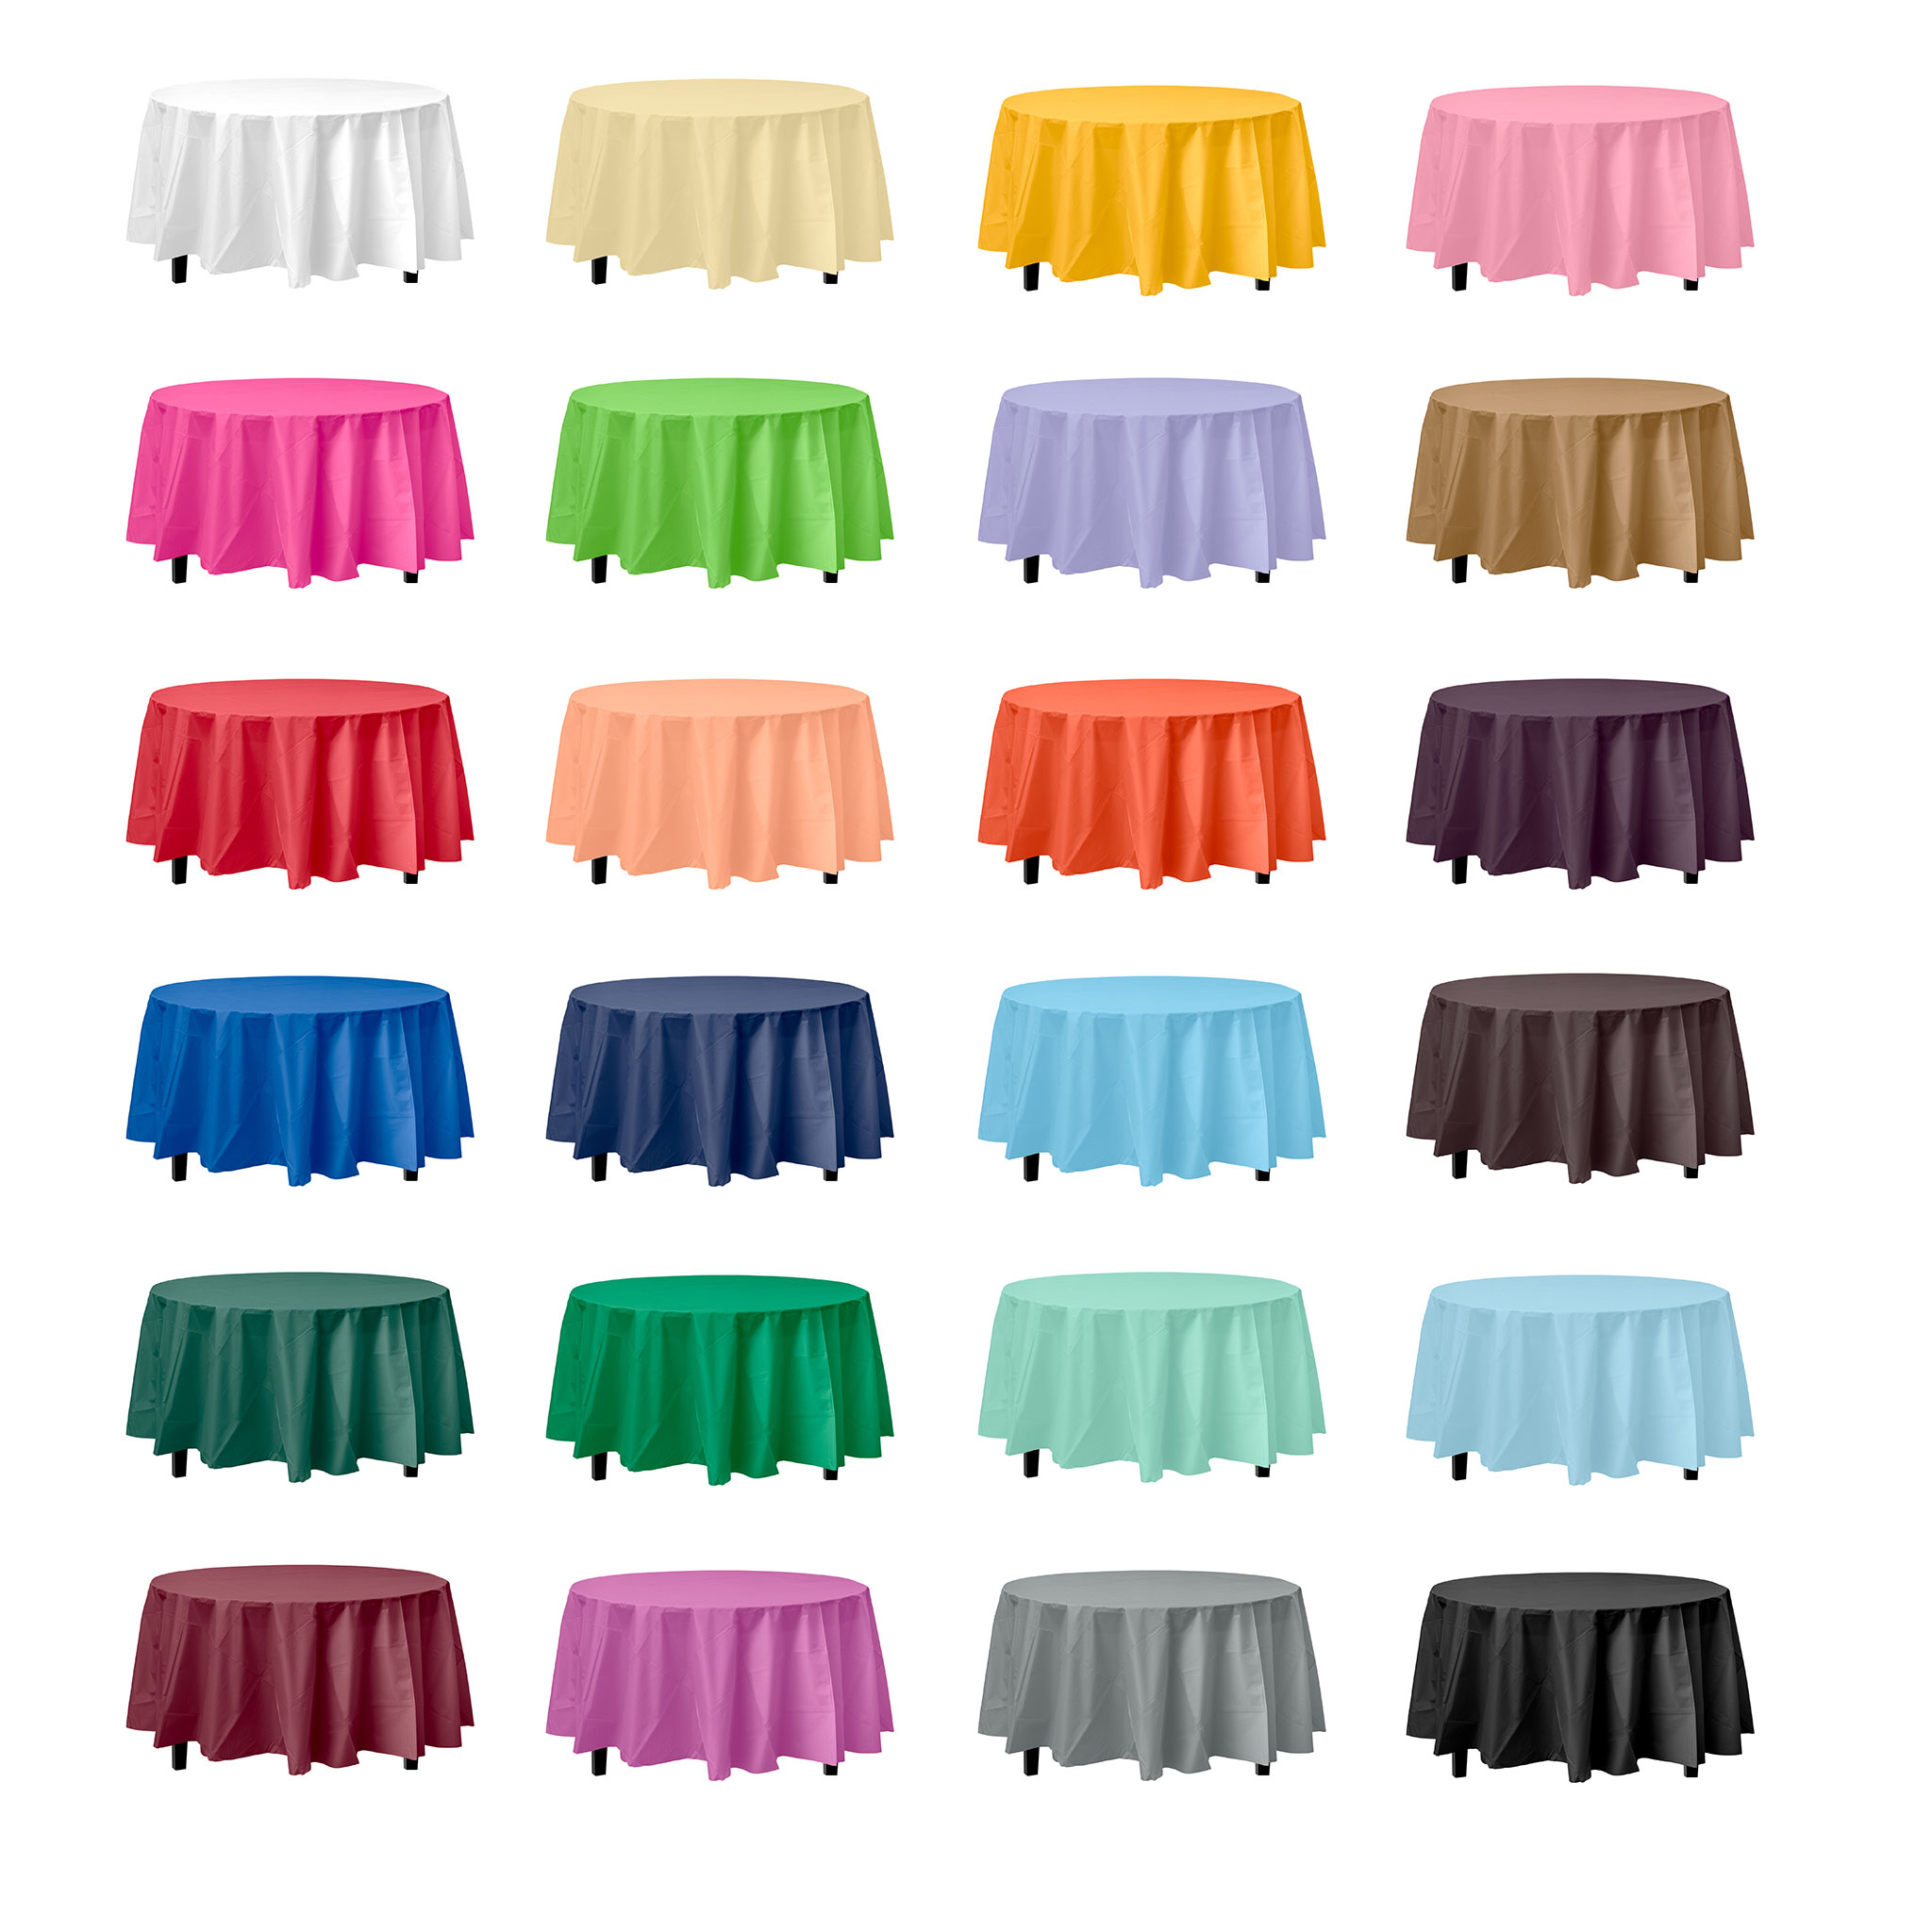 Round Plastic Table Covers With Elastic Plastic Tablecloths Cheap Table Covers Party Table Cloths